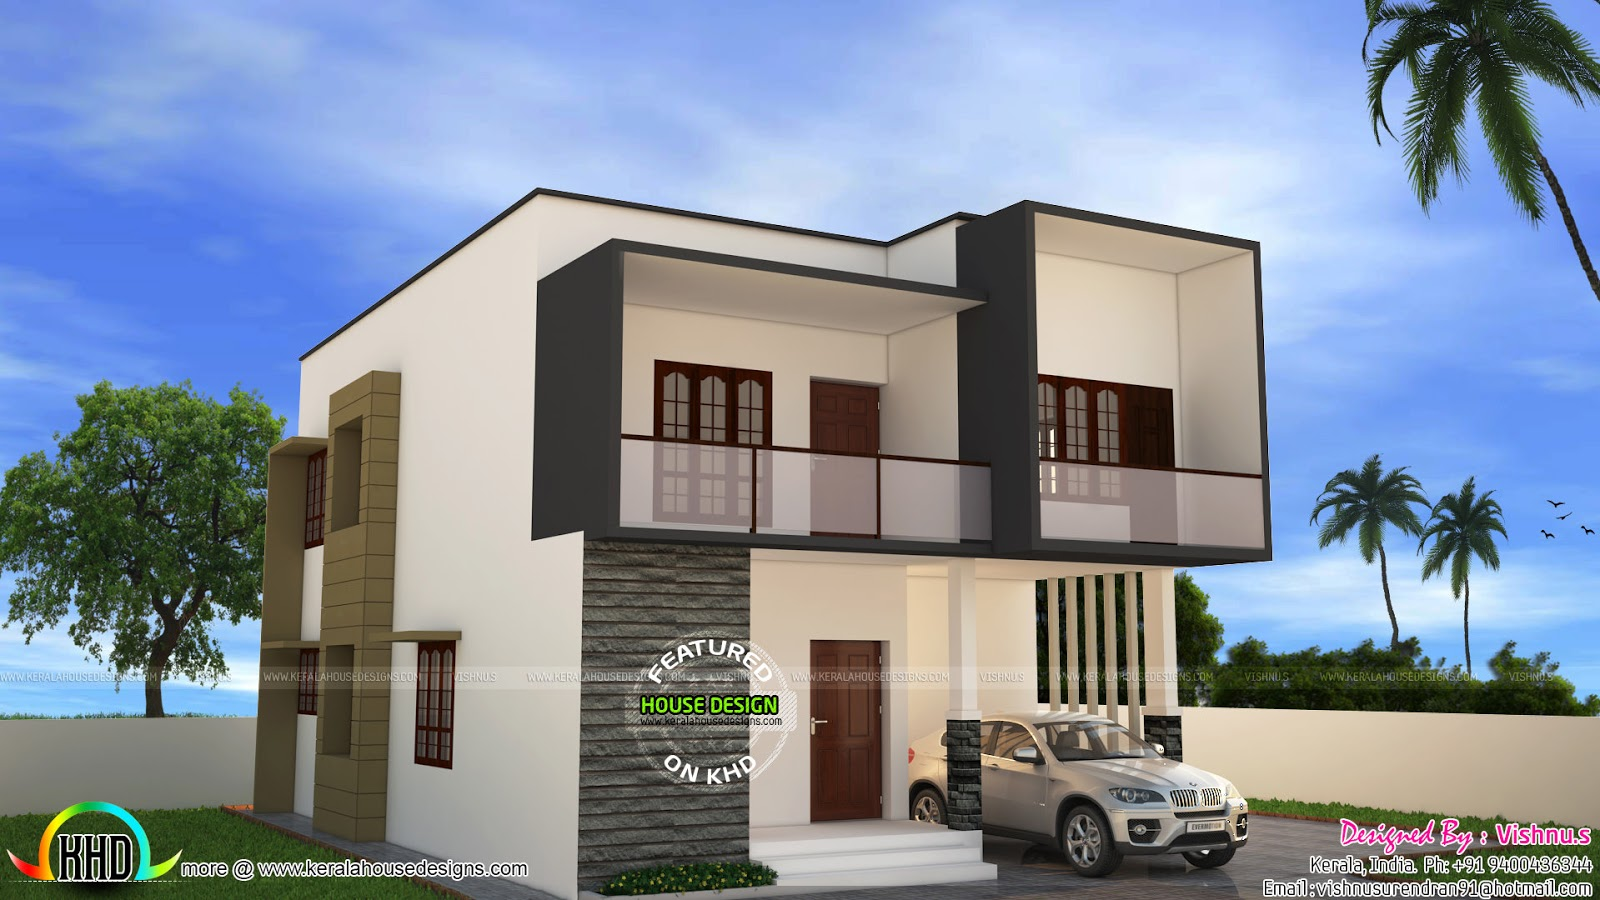 Simple modern house by vishnu s kerala home design and Simple home designs photos